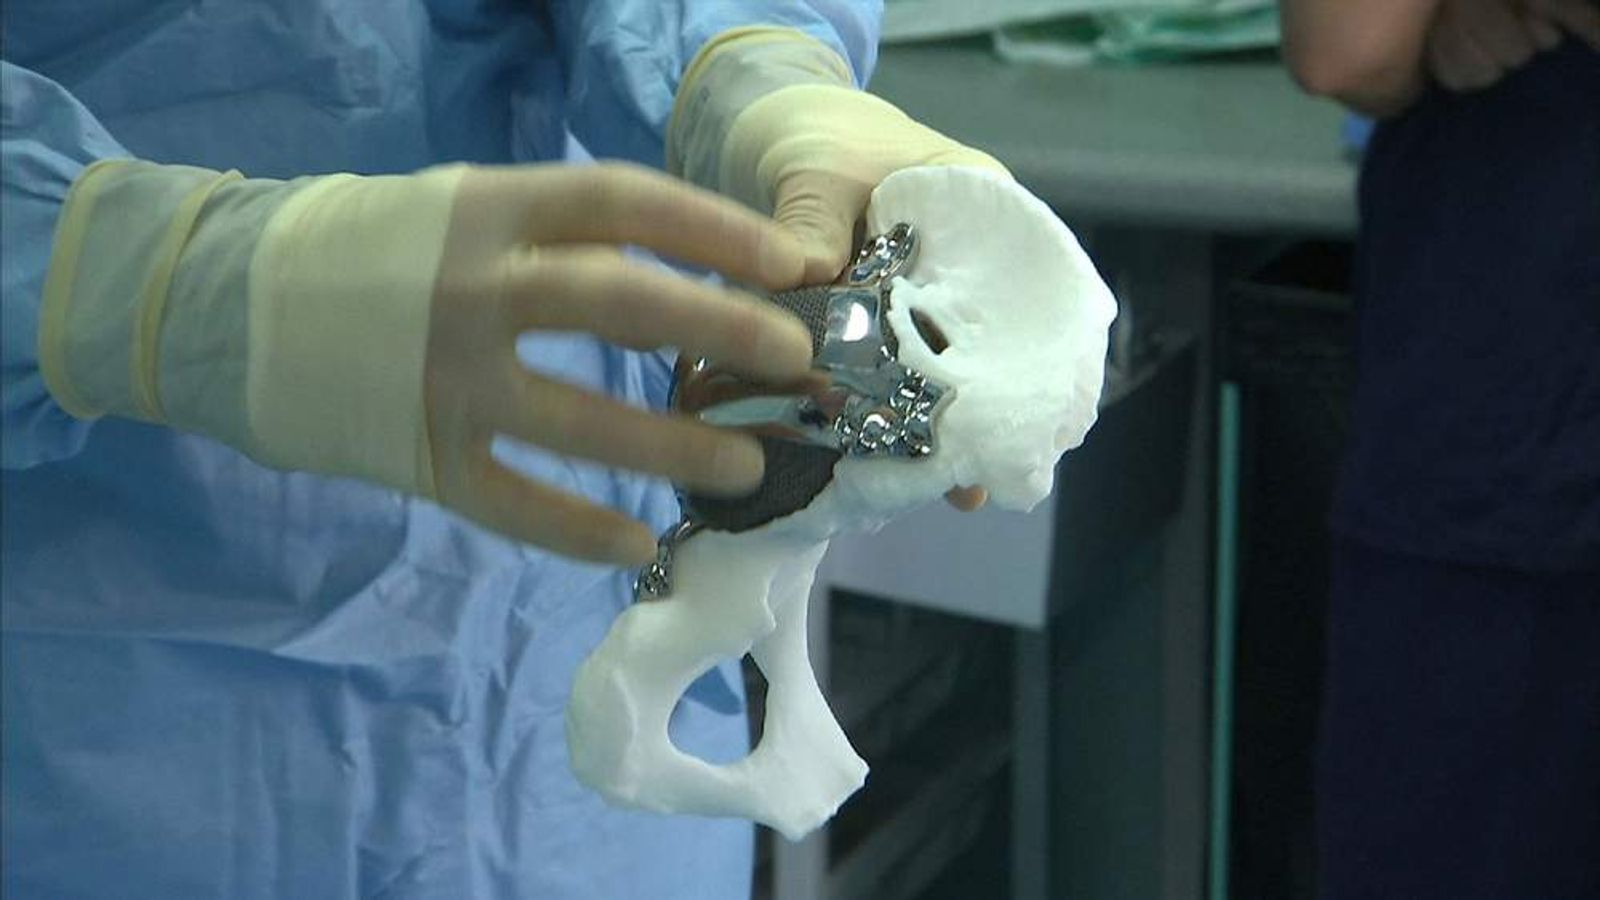 Scientists use 3D printer to create hip implant from X-ray